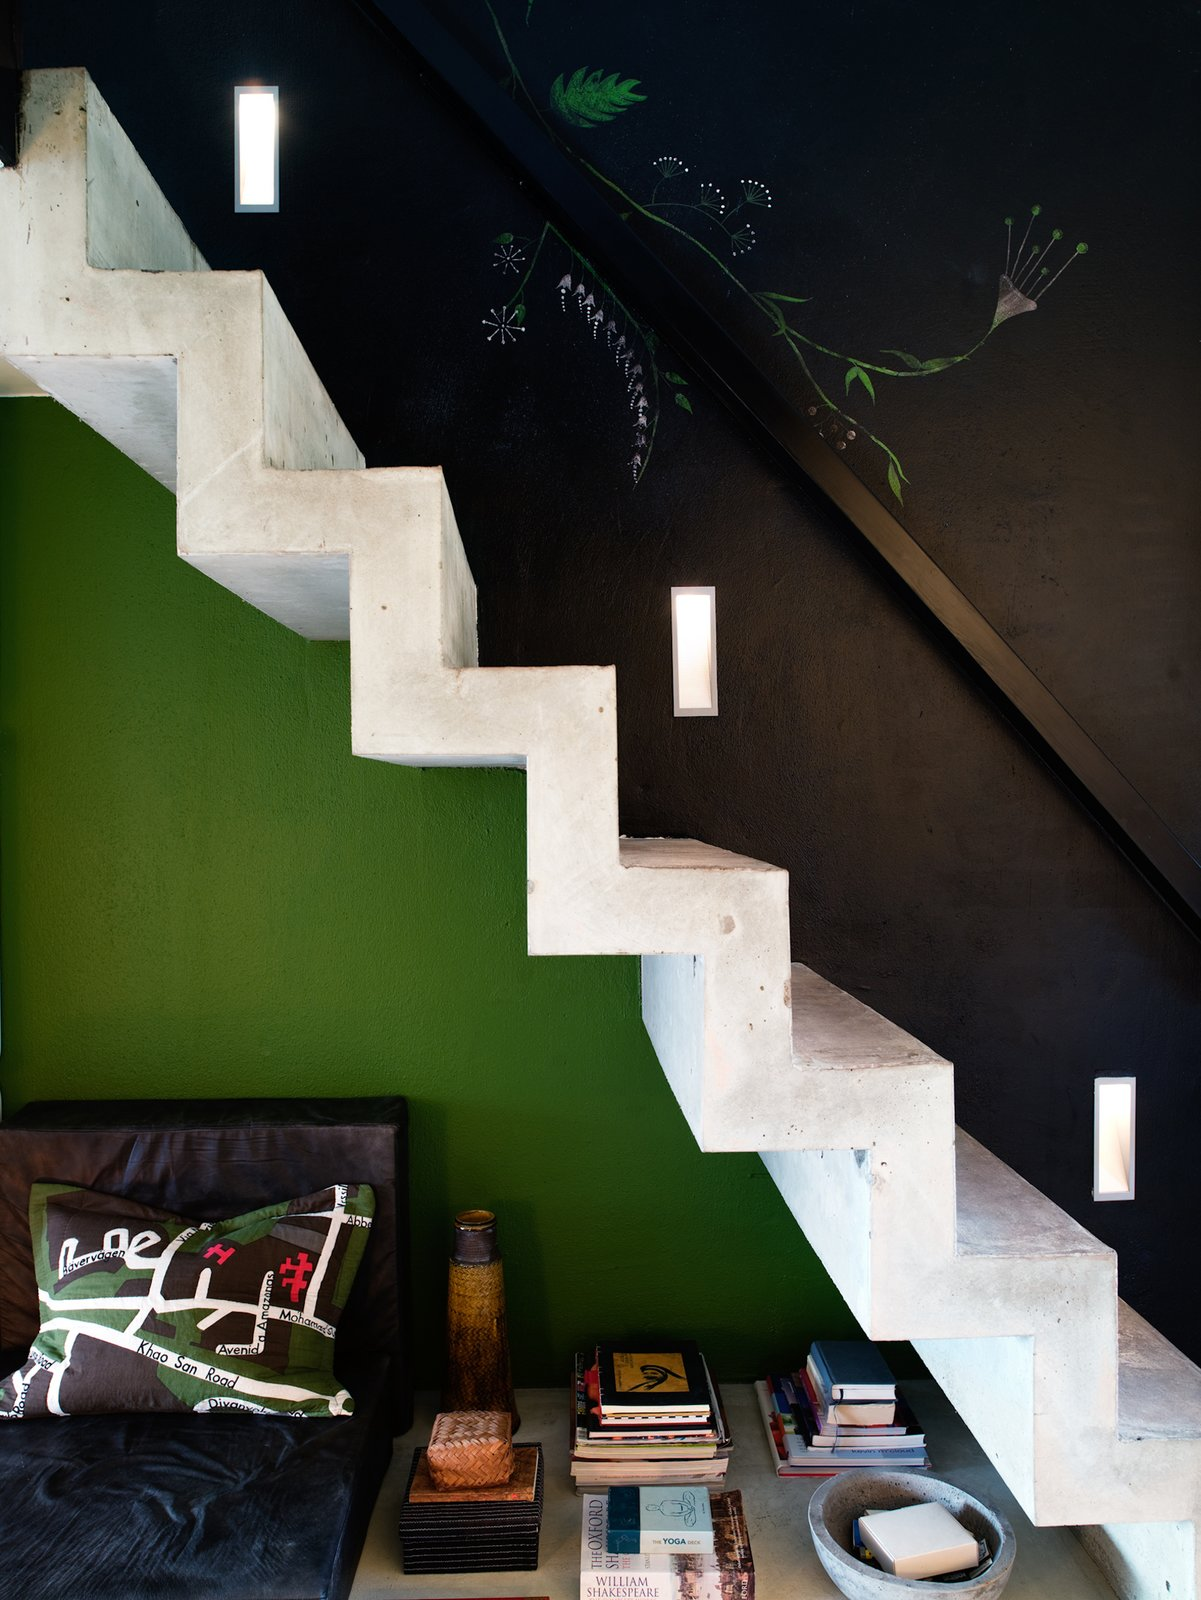 Concrete stairs lead up to the sleeping loft. Photo by Per Magnus Persson. Tiny Homes  by Erika Heet